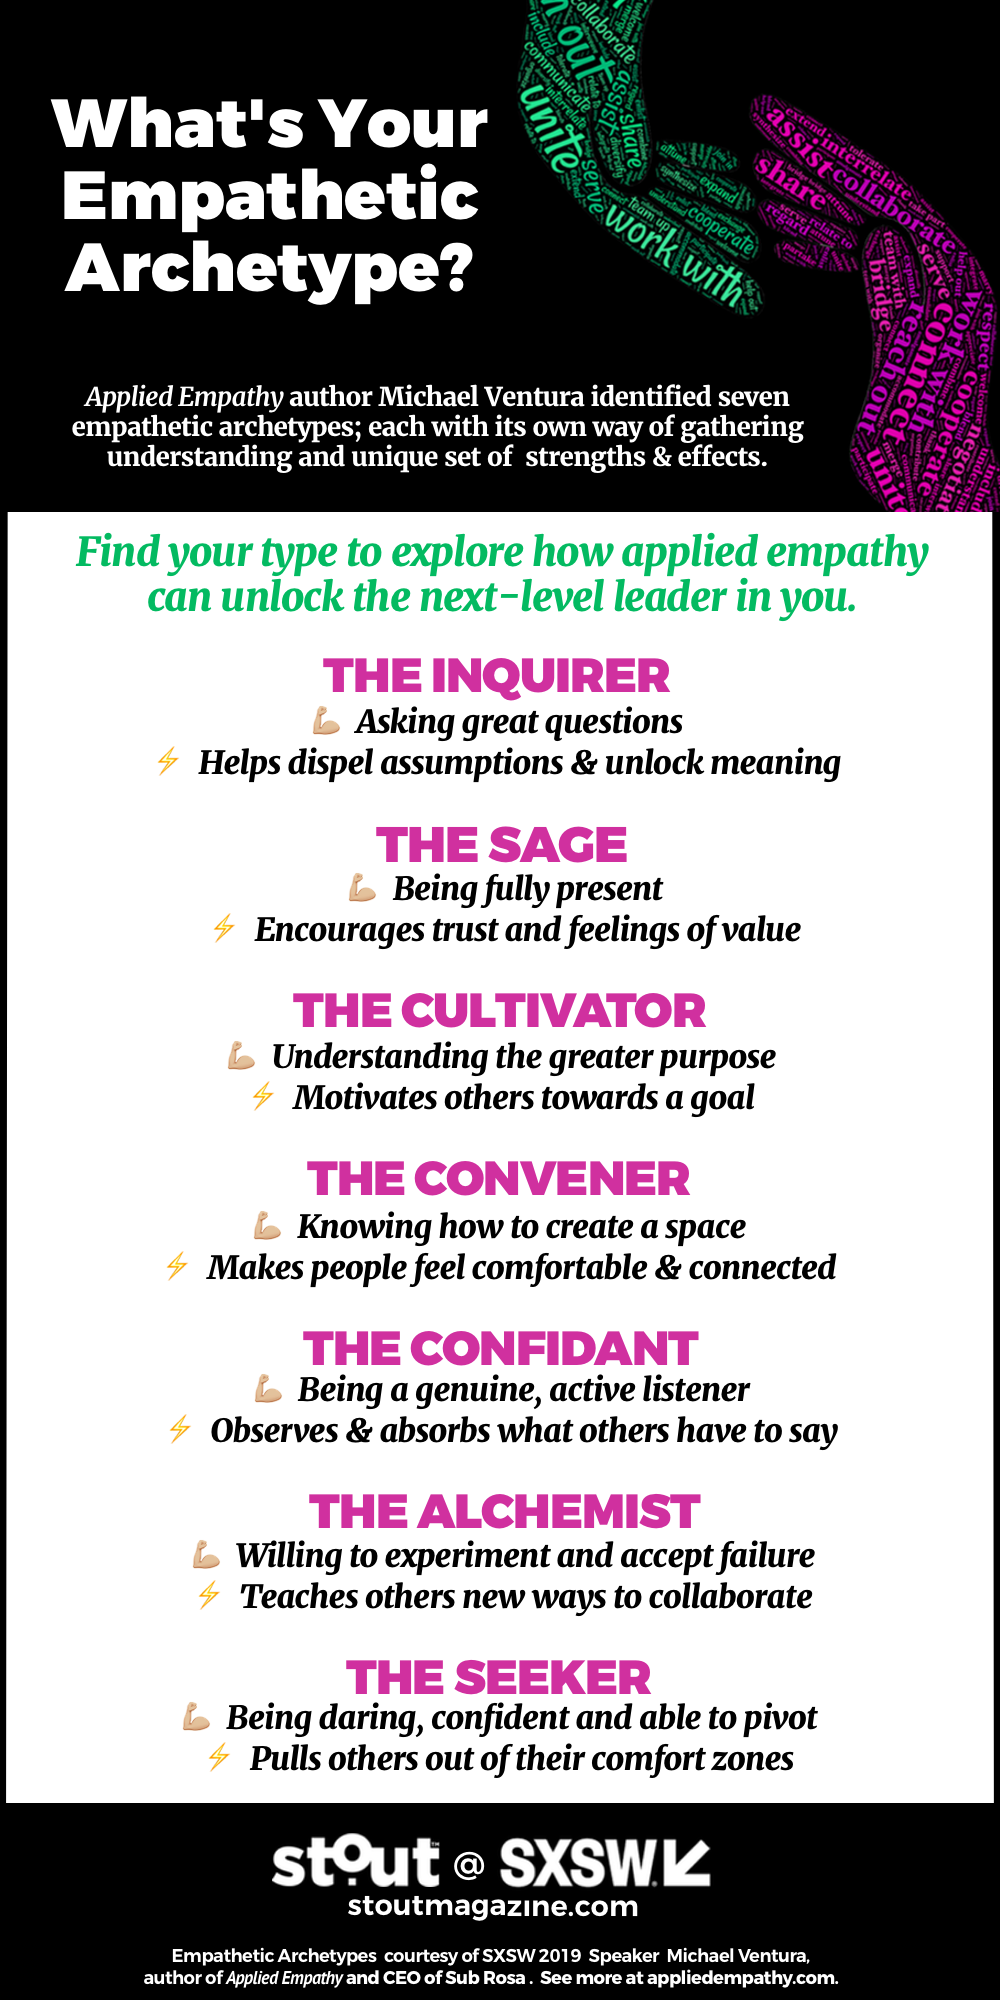 What's your empathetic archetype?